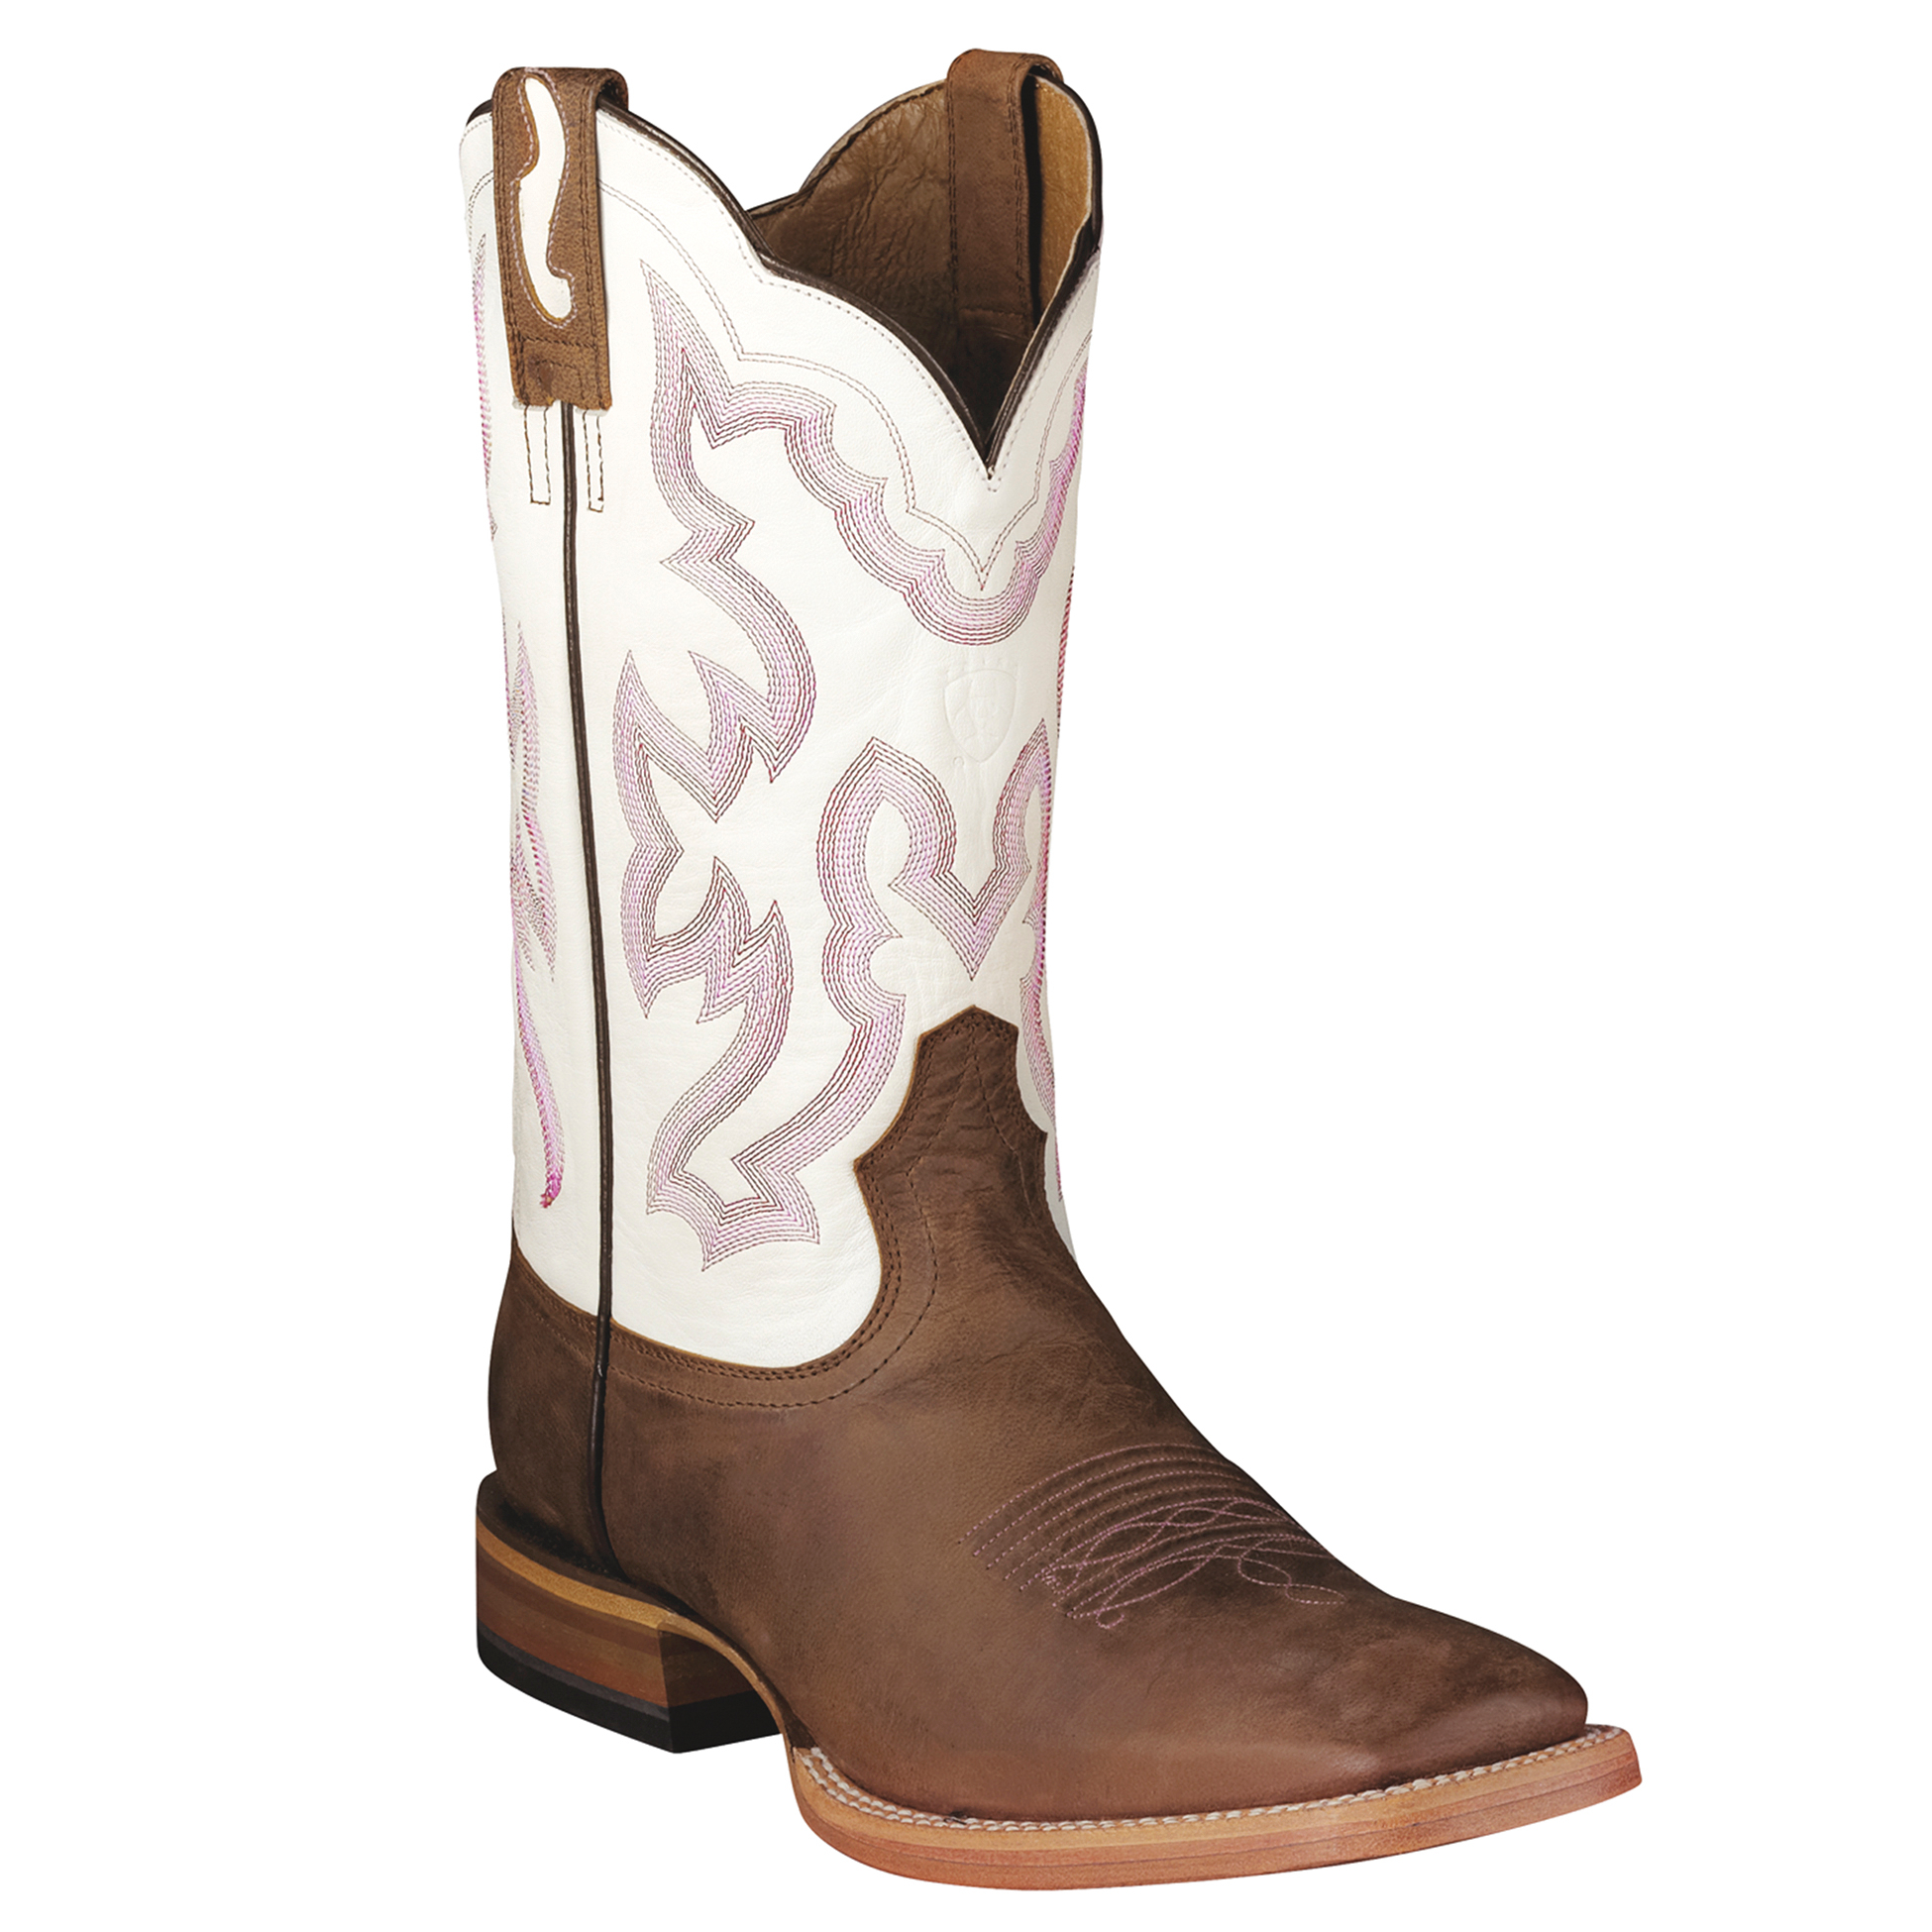 Ariat Cowboy Boots For Men FJ7IlY0e